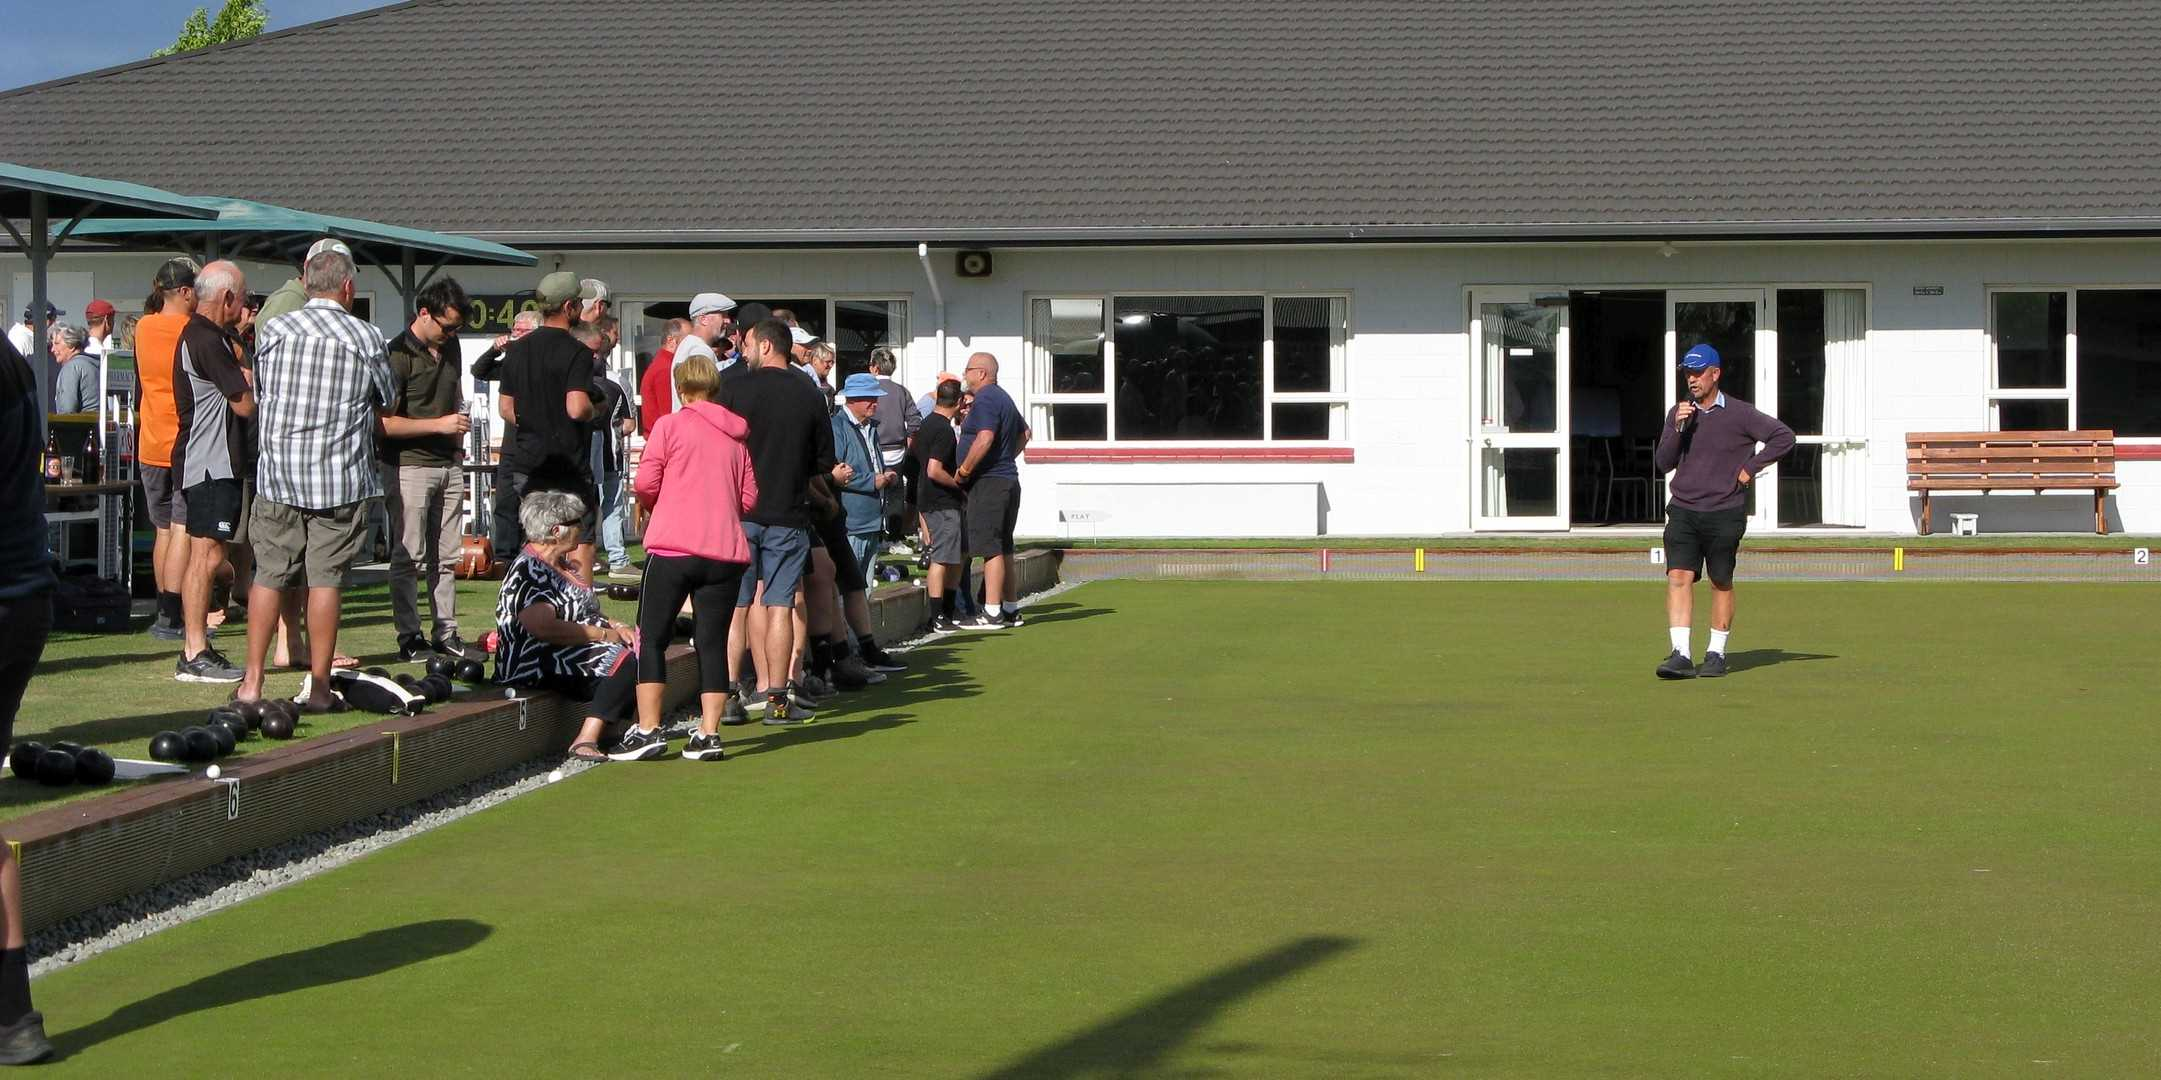 Bruce Welcomes 128 People to Community Bowls 2021 - 18 Jan